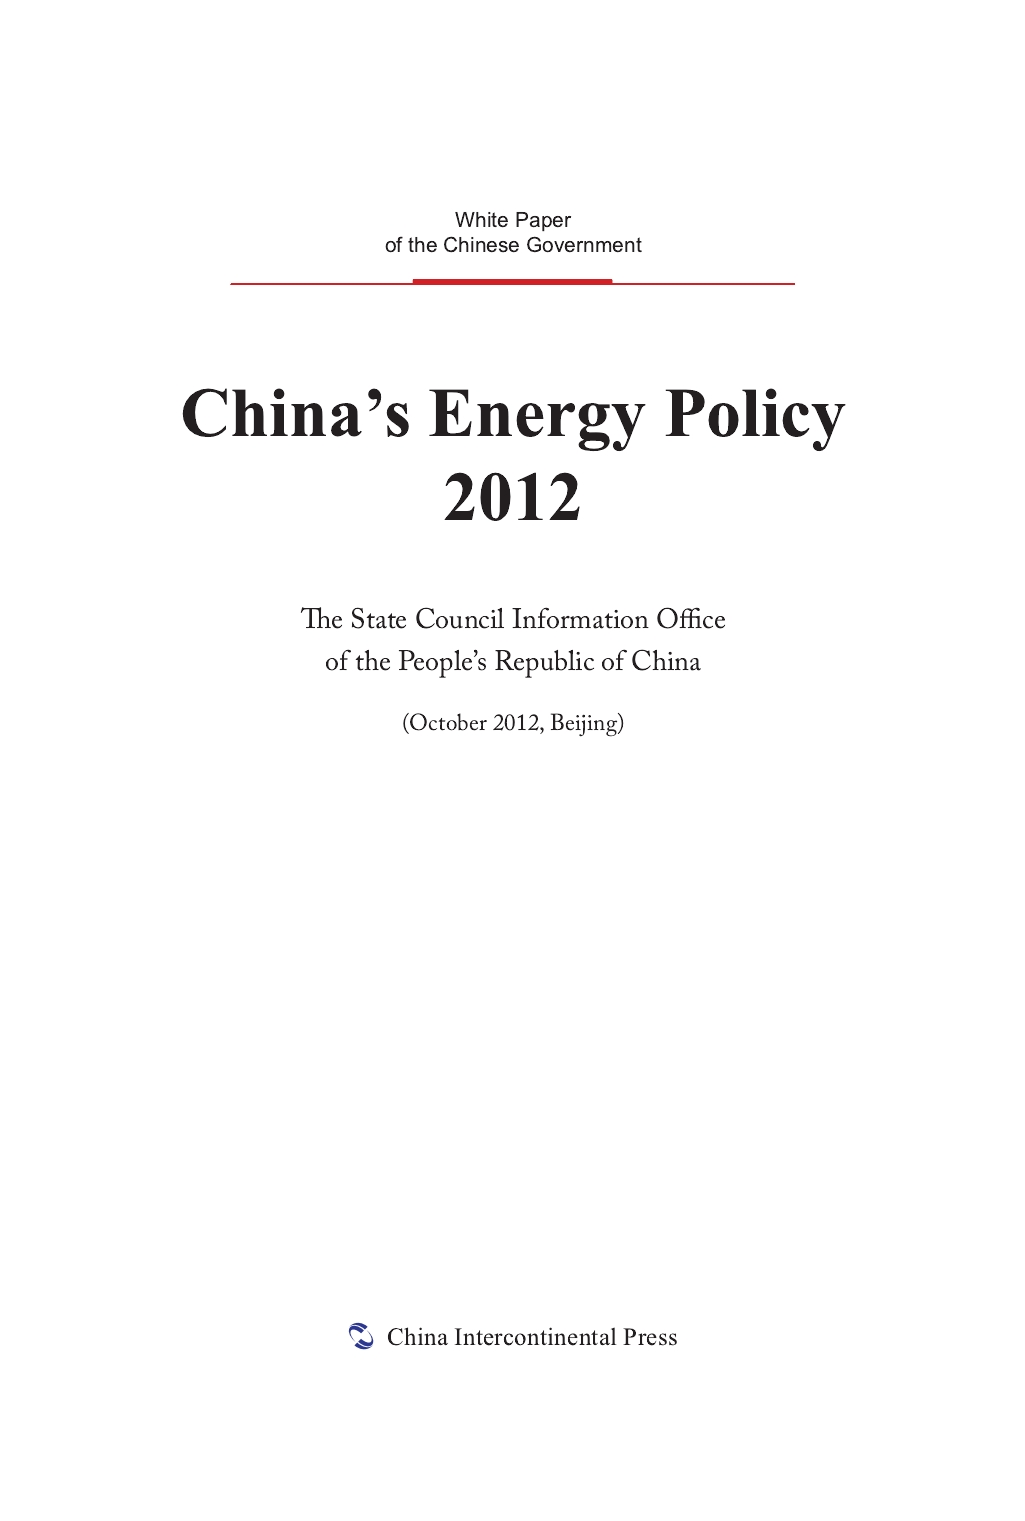 China's Energy Policy 2012